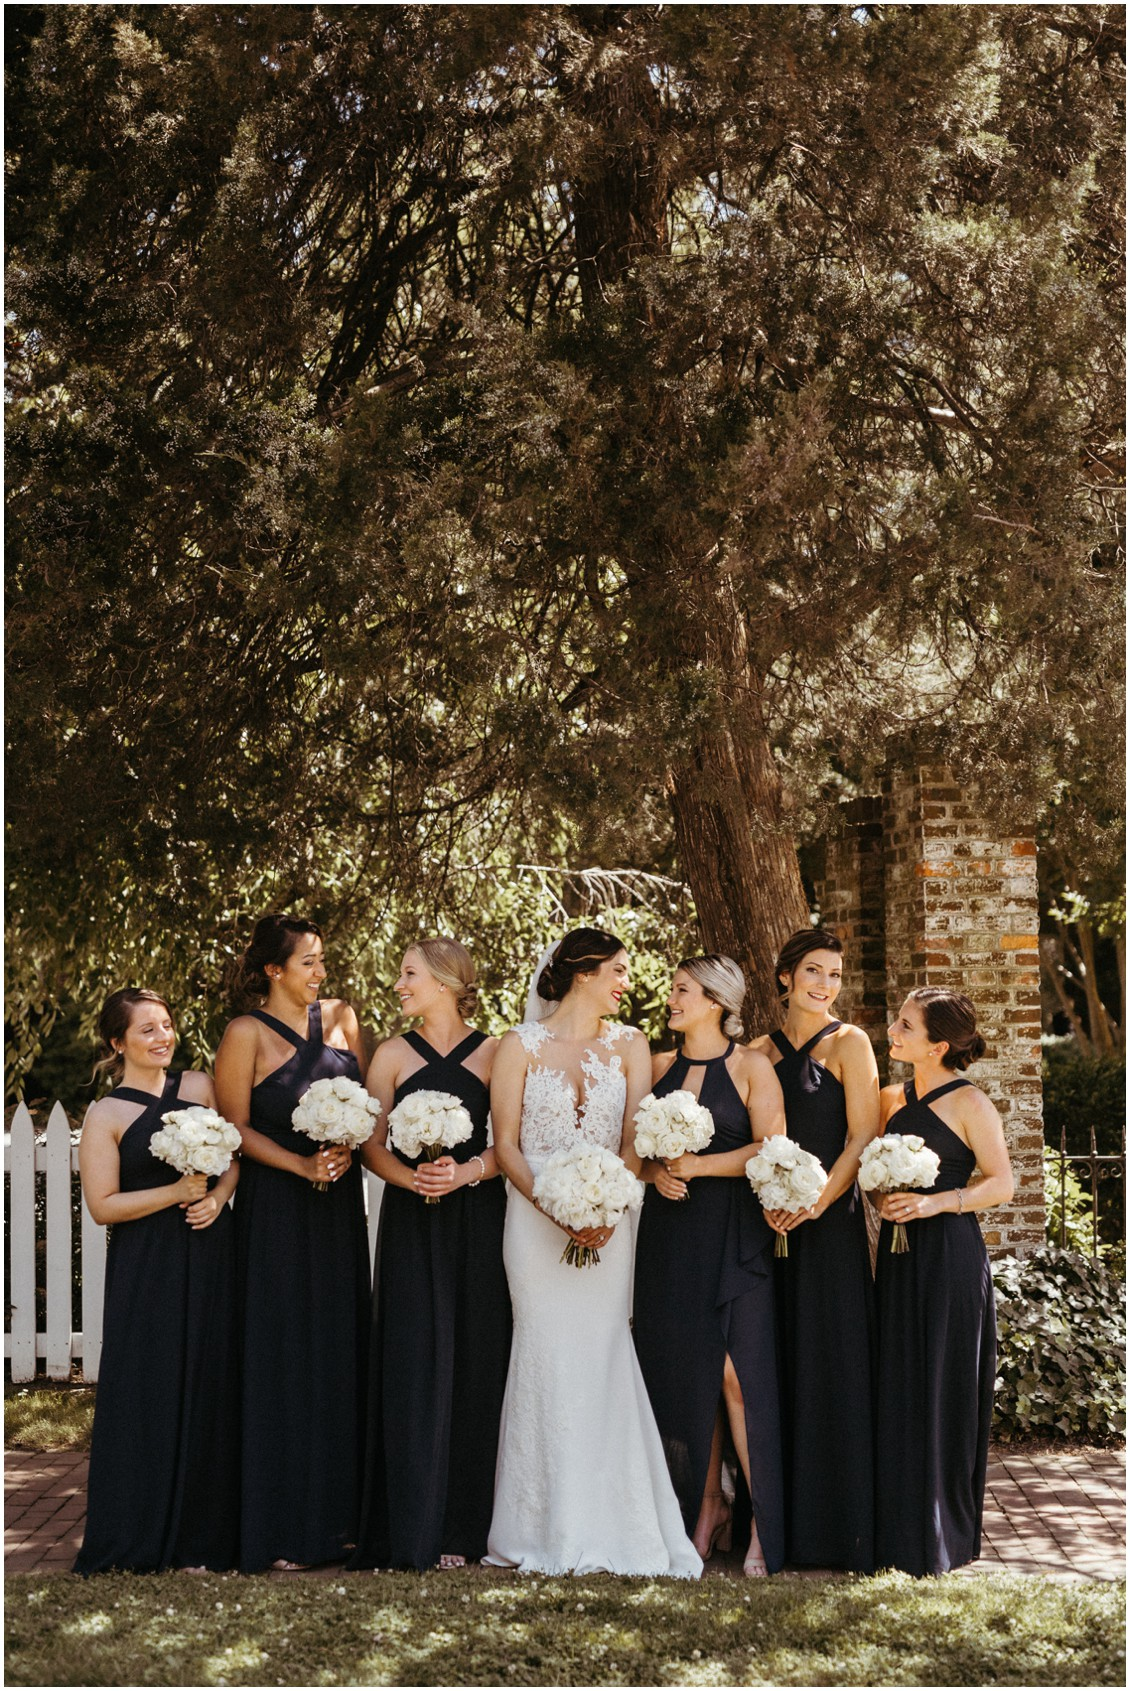 Bride with her bridesmaids under trees, holding bouquets of white peonies. | My Eastern Shore Wedding |